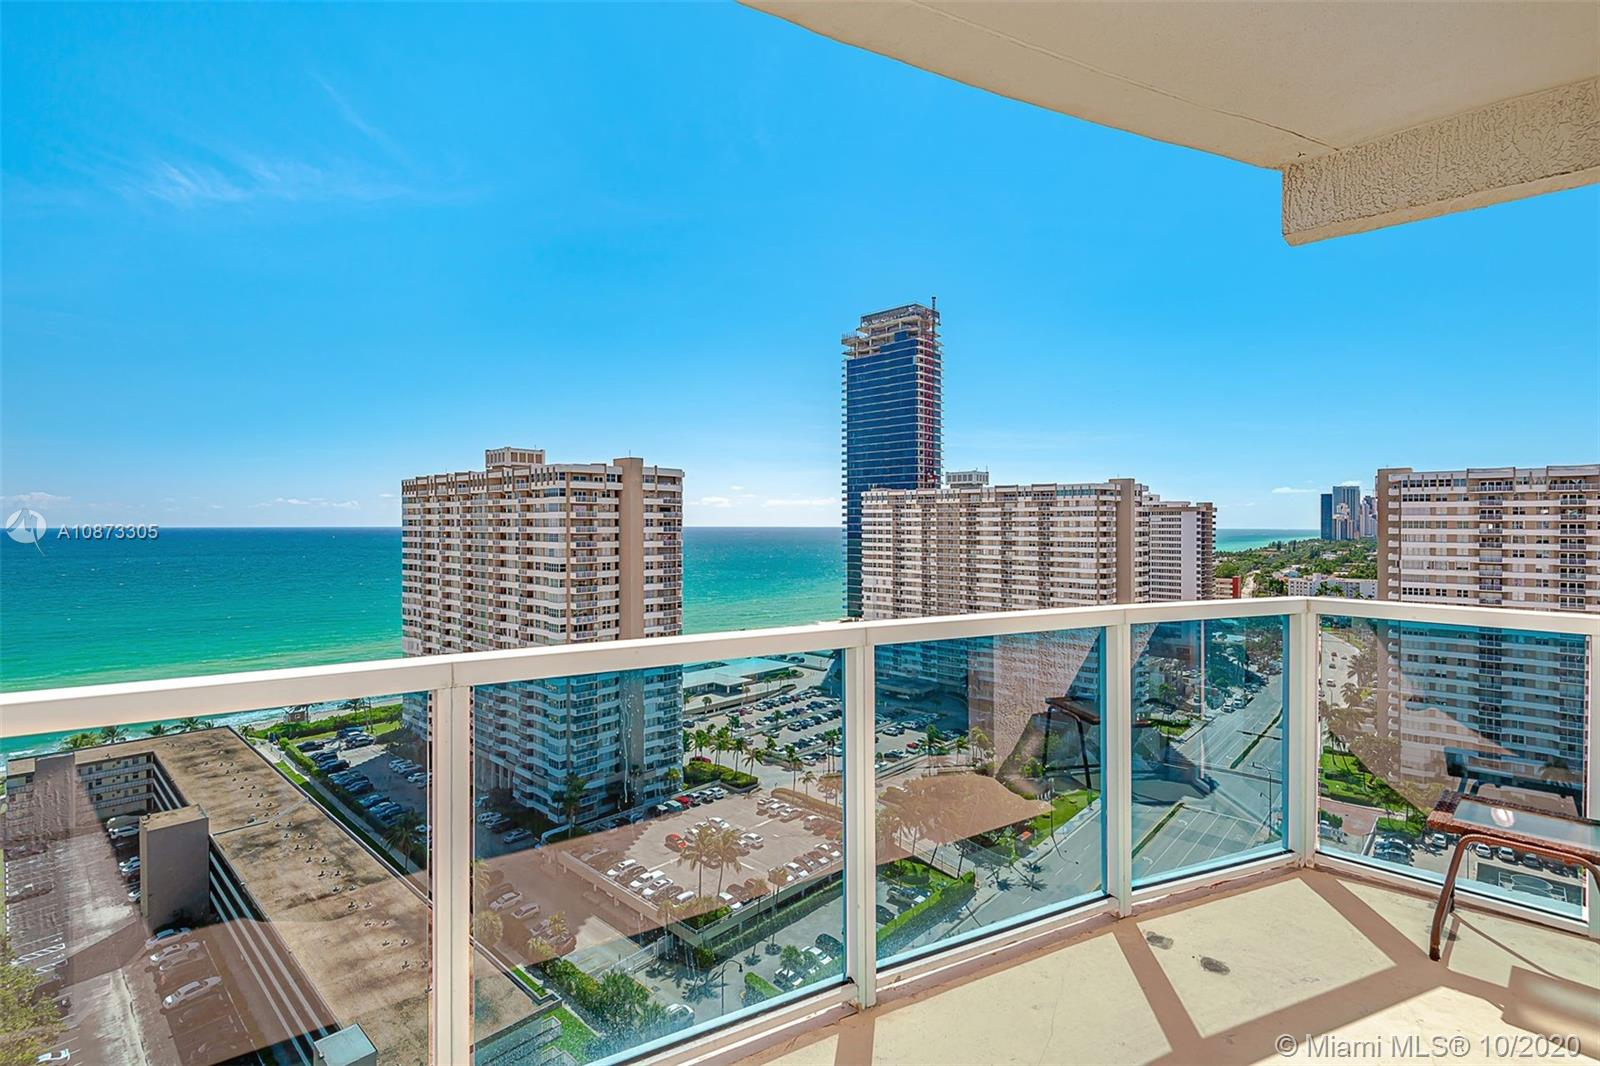 Ocean Marine Yacht Club #1901 - 1945 S Ocean Dr (Best Views) #1901, Hallandale Beach, FL 33009